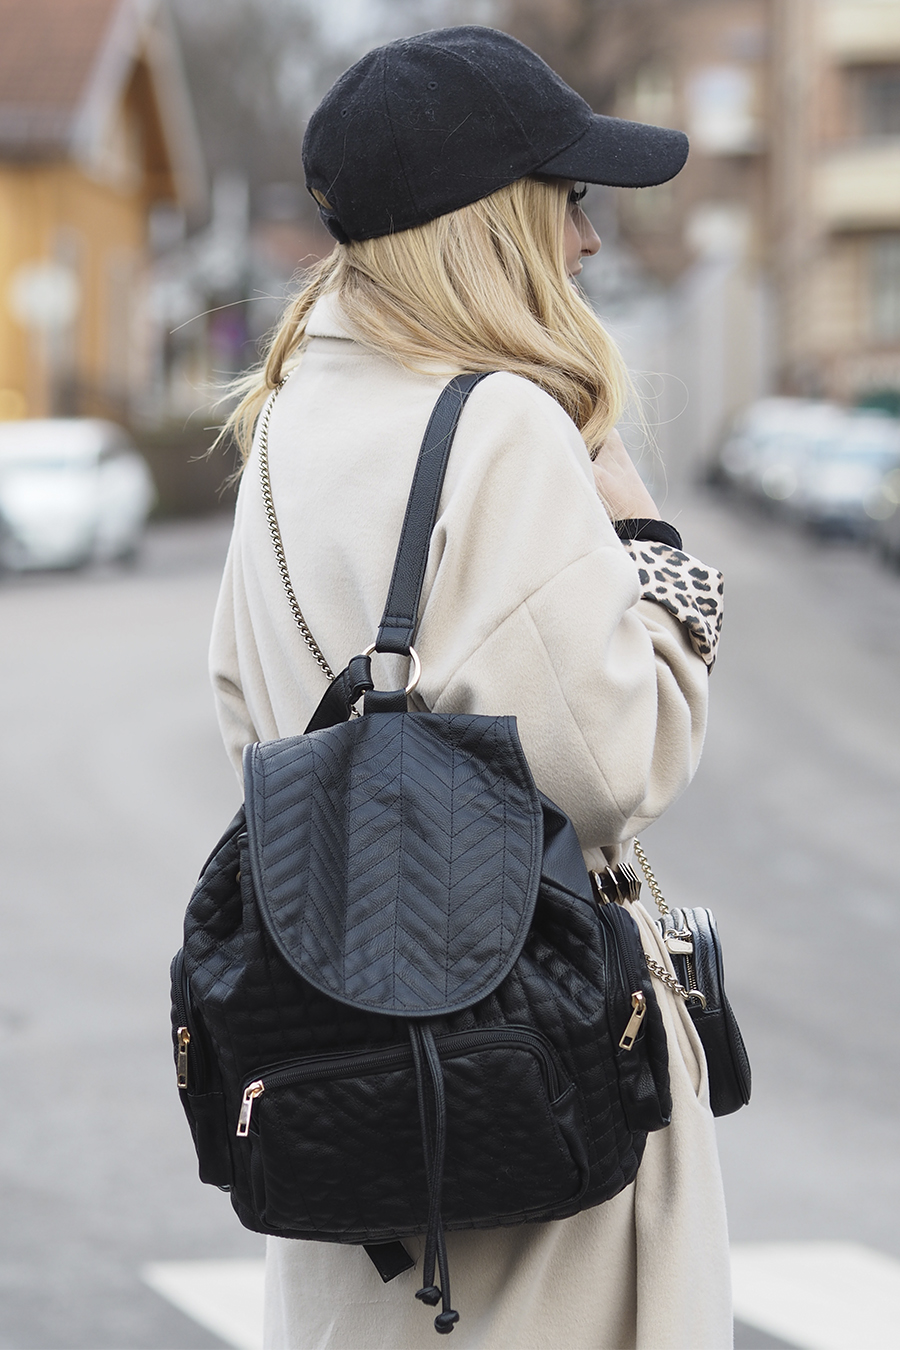 Lene Orvik is wearing black backpack from Bik Bok